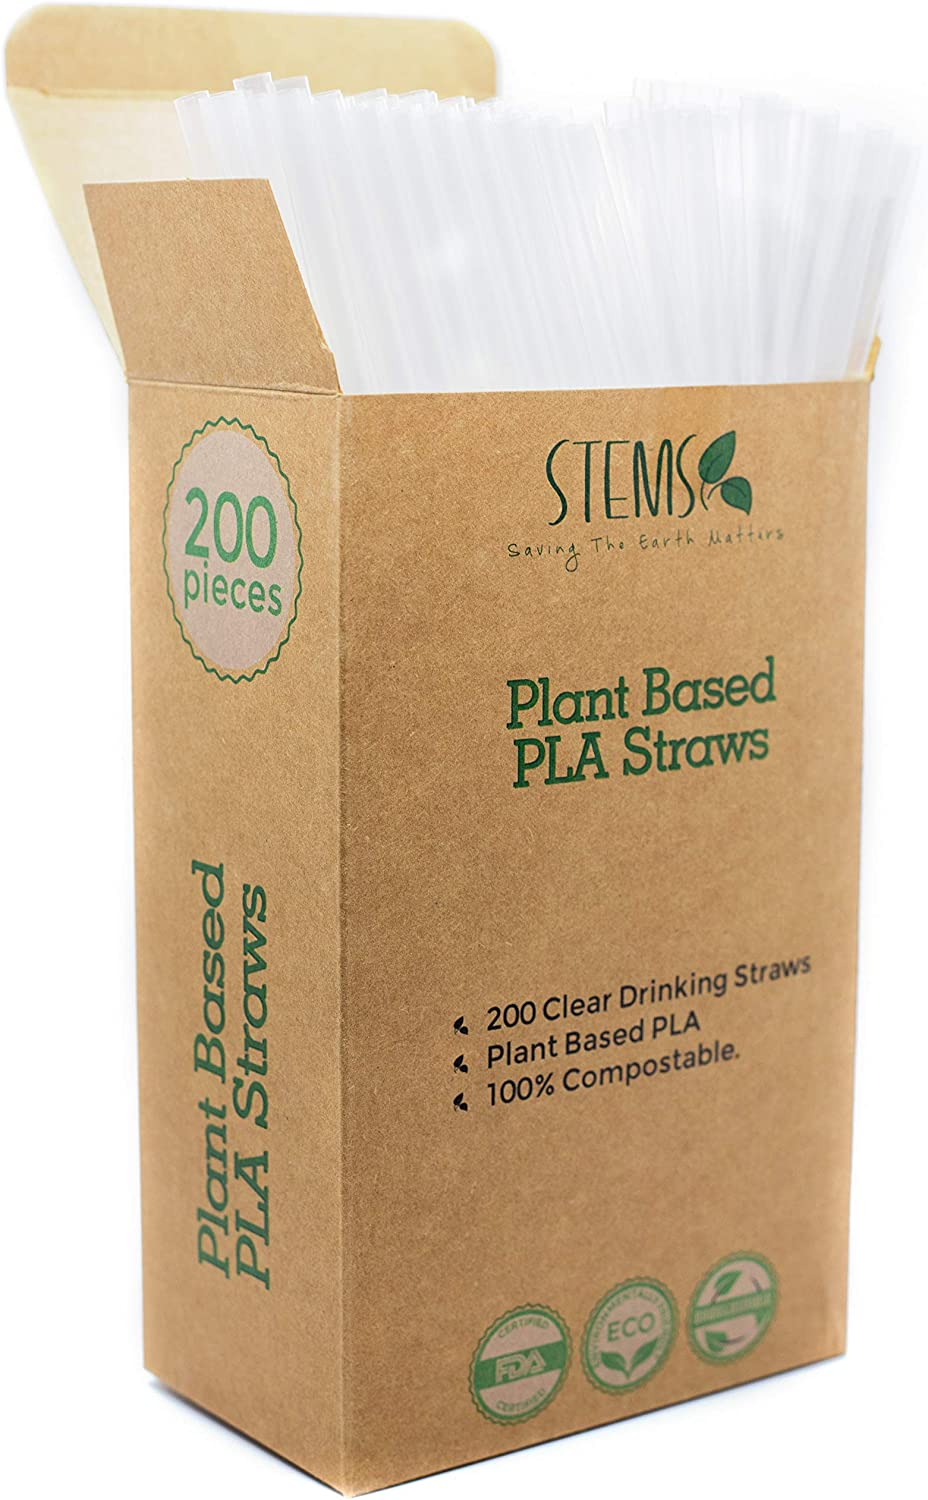 STEMS 200 Clear Drinking Straws - 100% Compostable Plant Based PLA - Eco-Friendly and Biodegradable Alternative to Plastic Straws